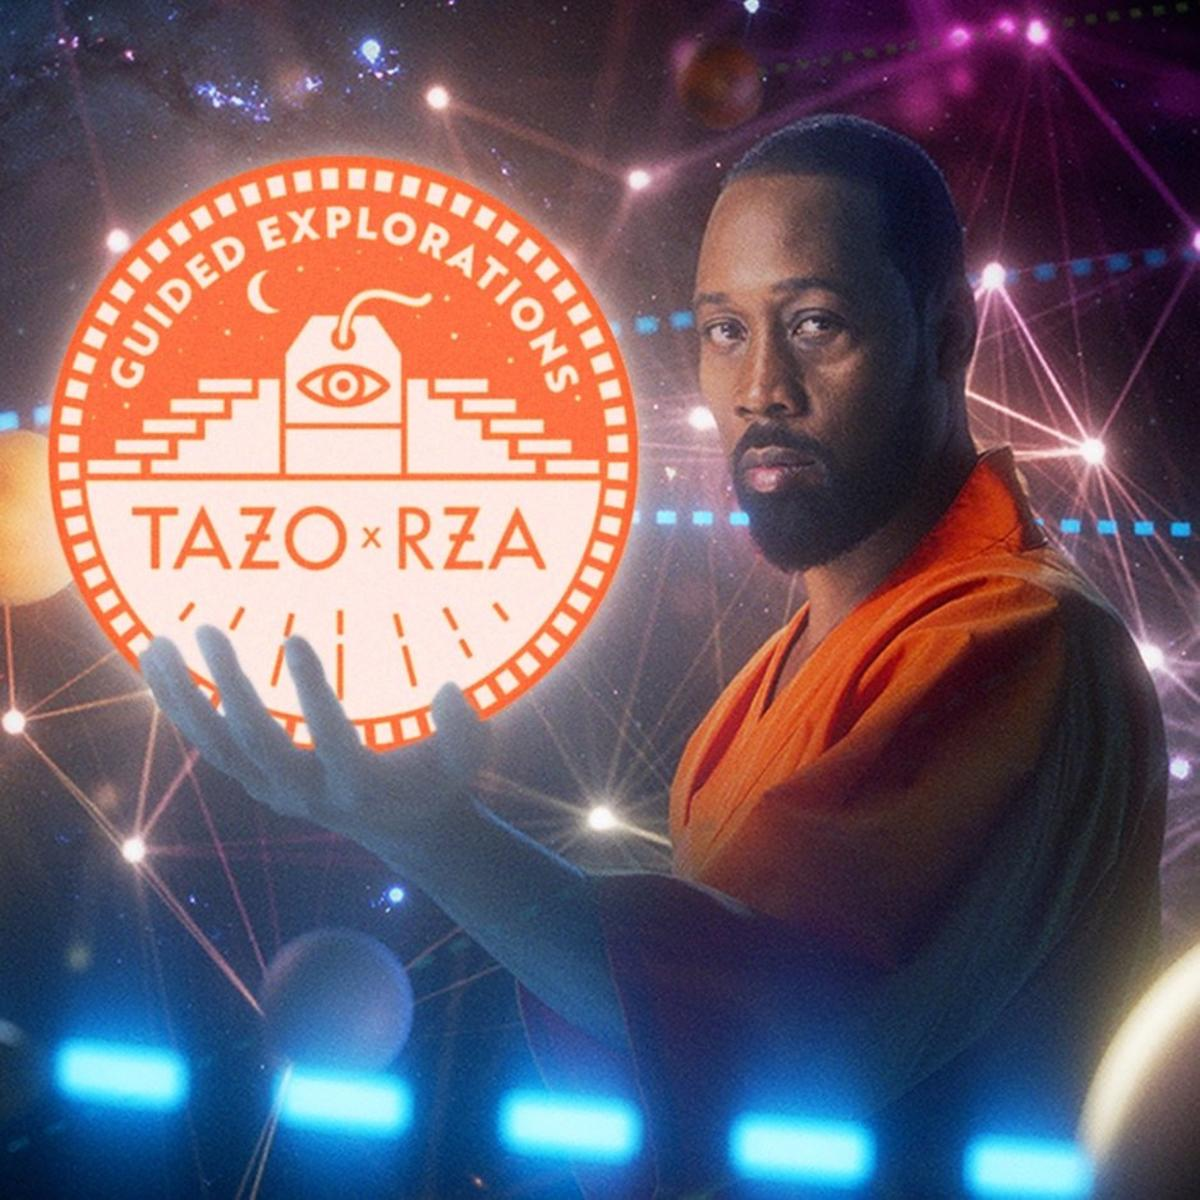 RZA — «Guided Explorations»